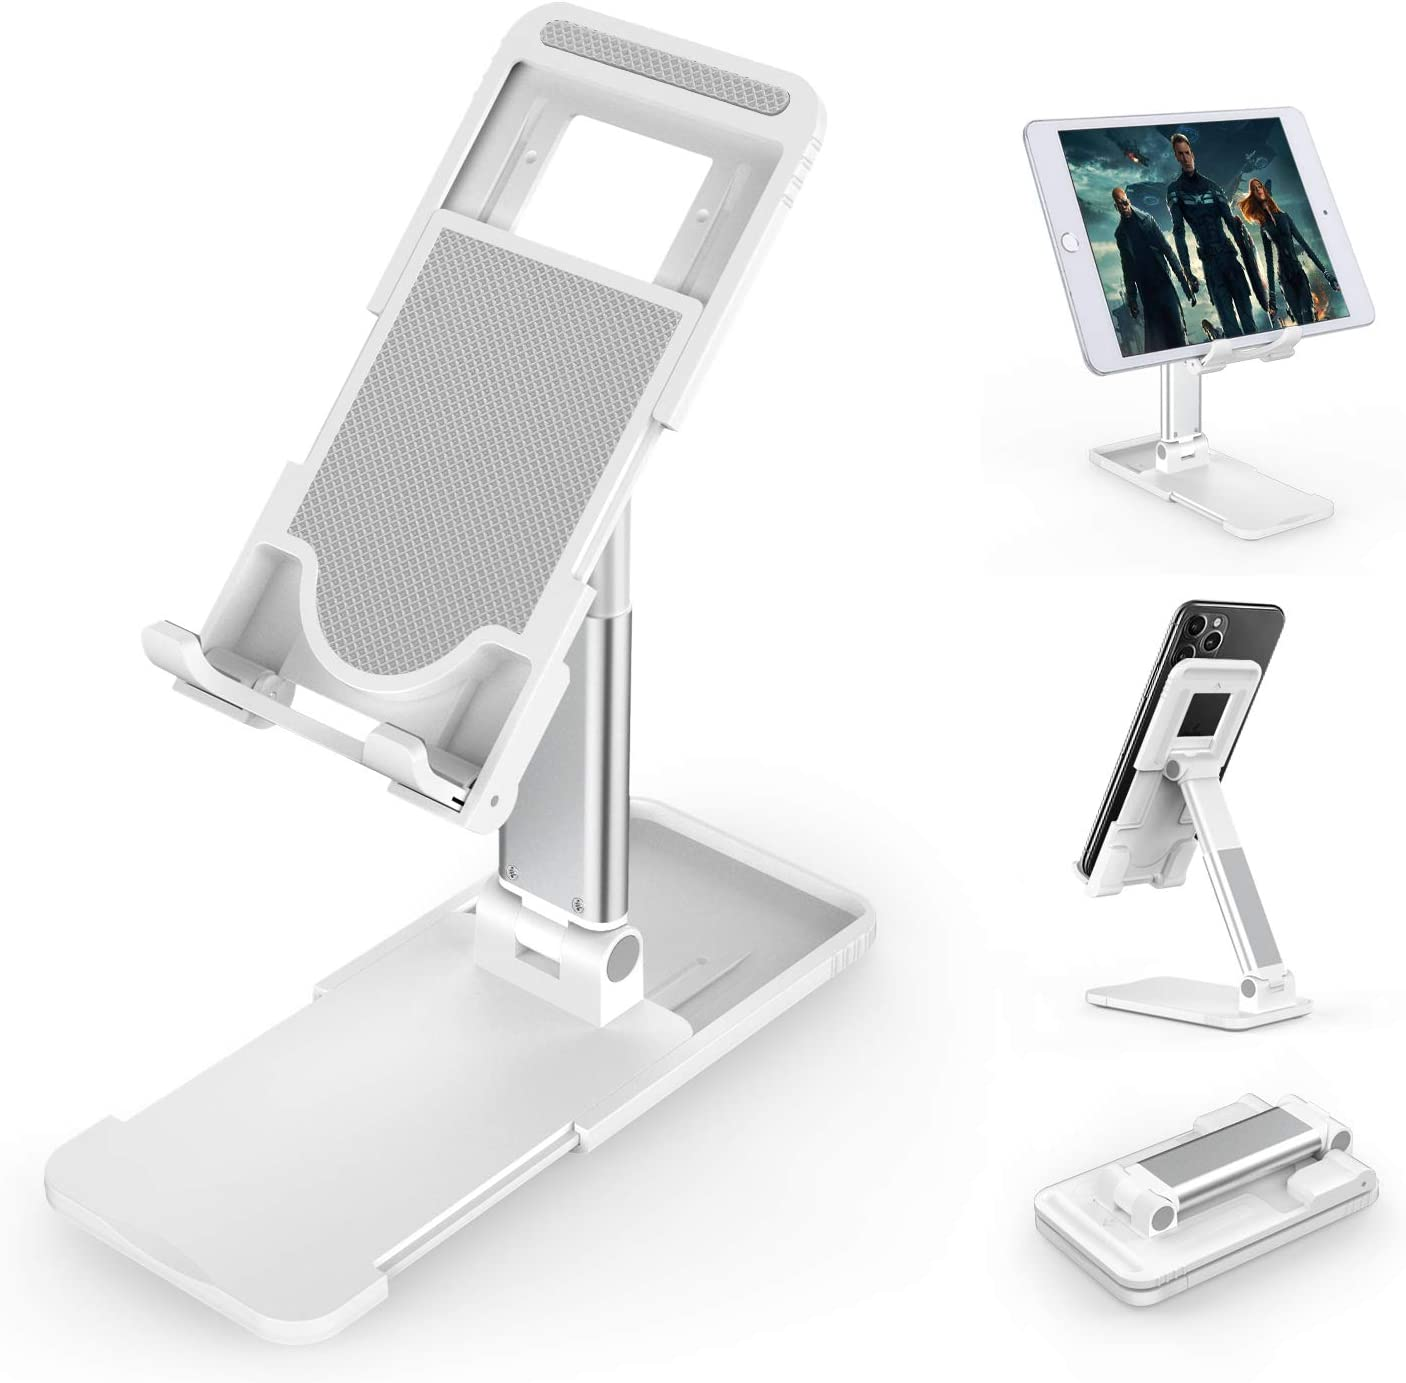 Cell Phone Stand Holder, Foldable Desktop Phone Stand, Extensiable Anti-Slip Base and Height Angle Adjustable Desk Phone Holder for iPad, Kindle, Mobile Phone, Tablet and Switch